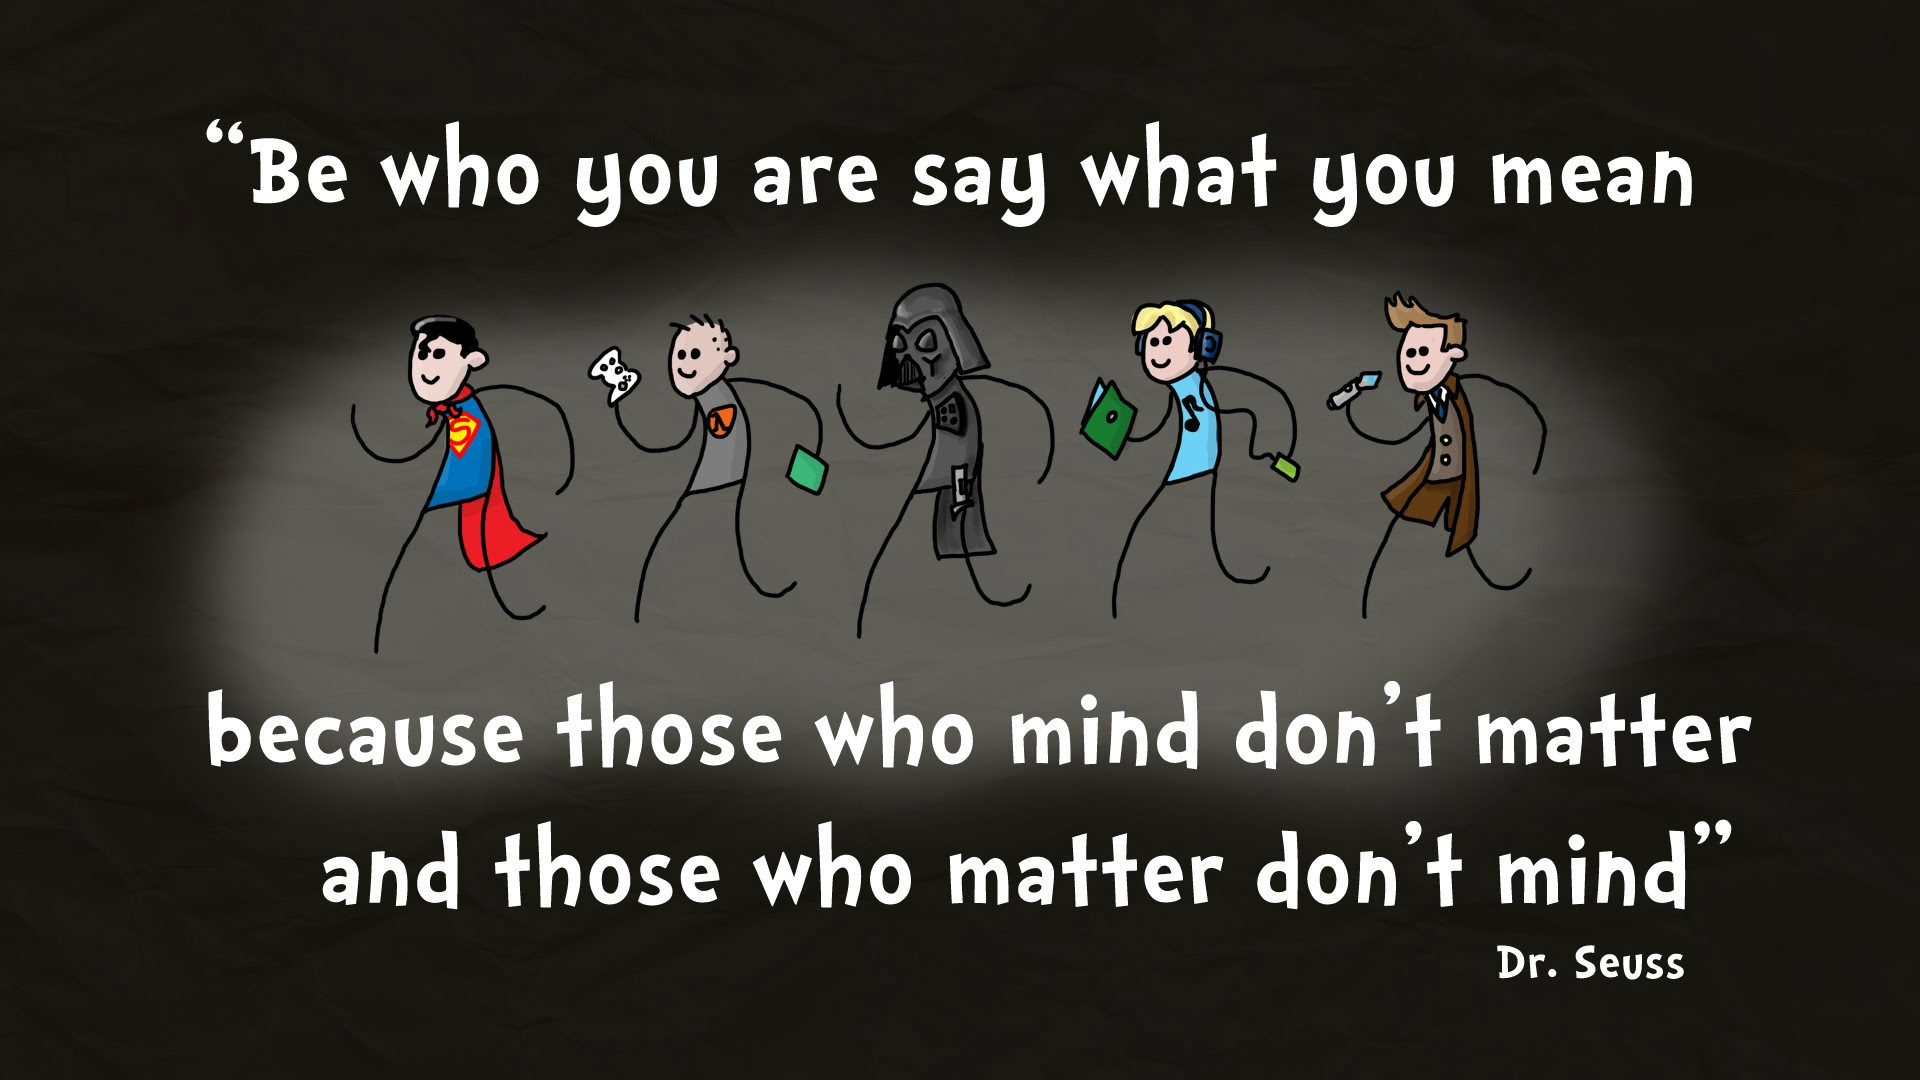 Be Who You Are Say What You Mean Dr Seuss 1920x1080 Quotesporn